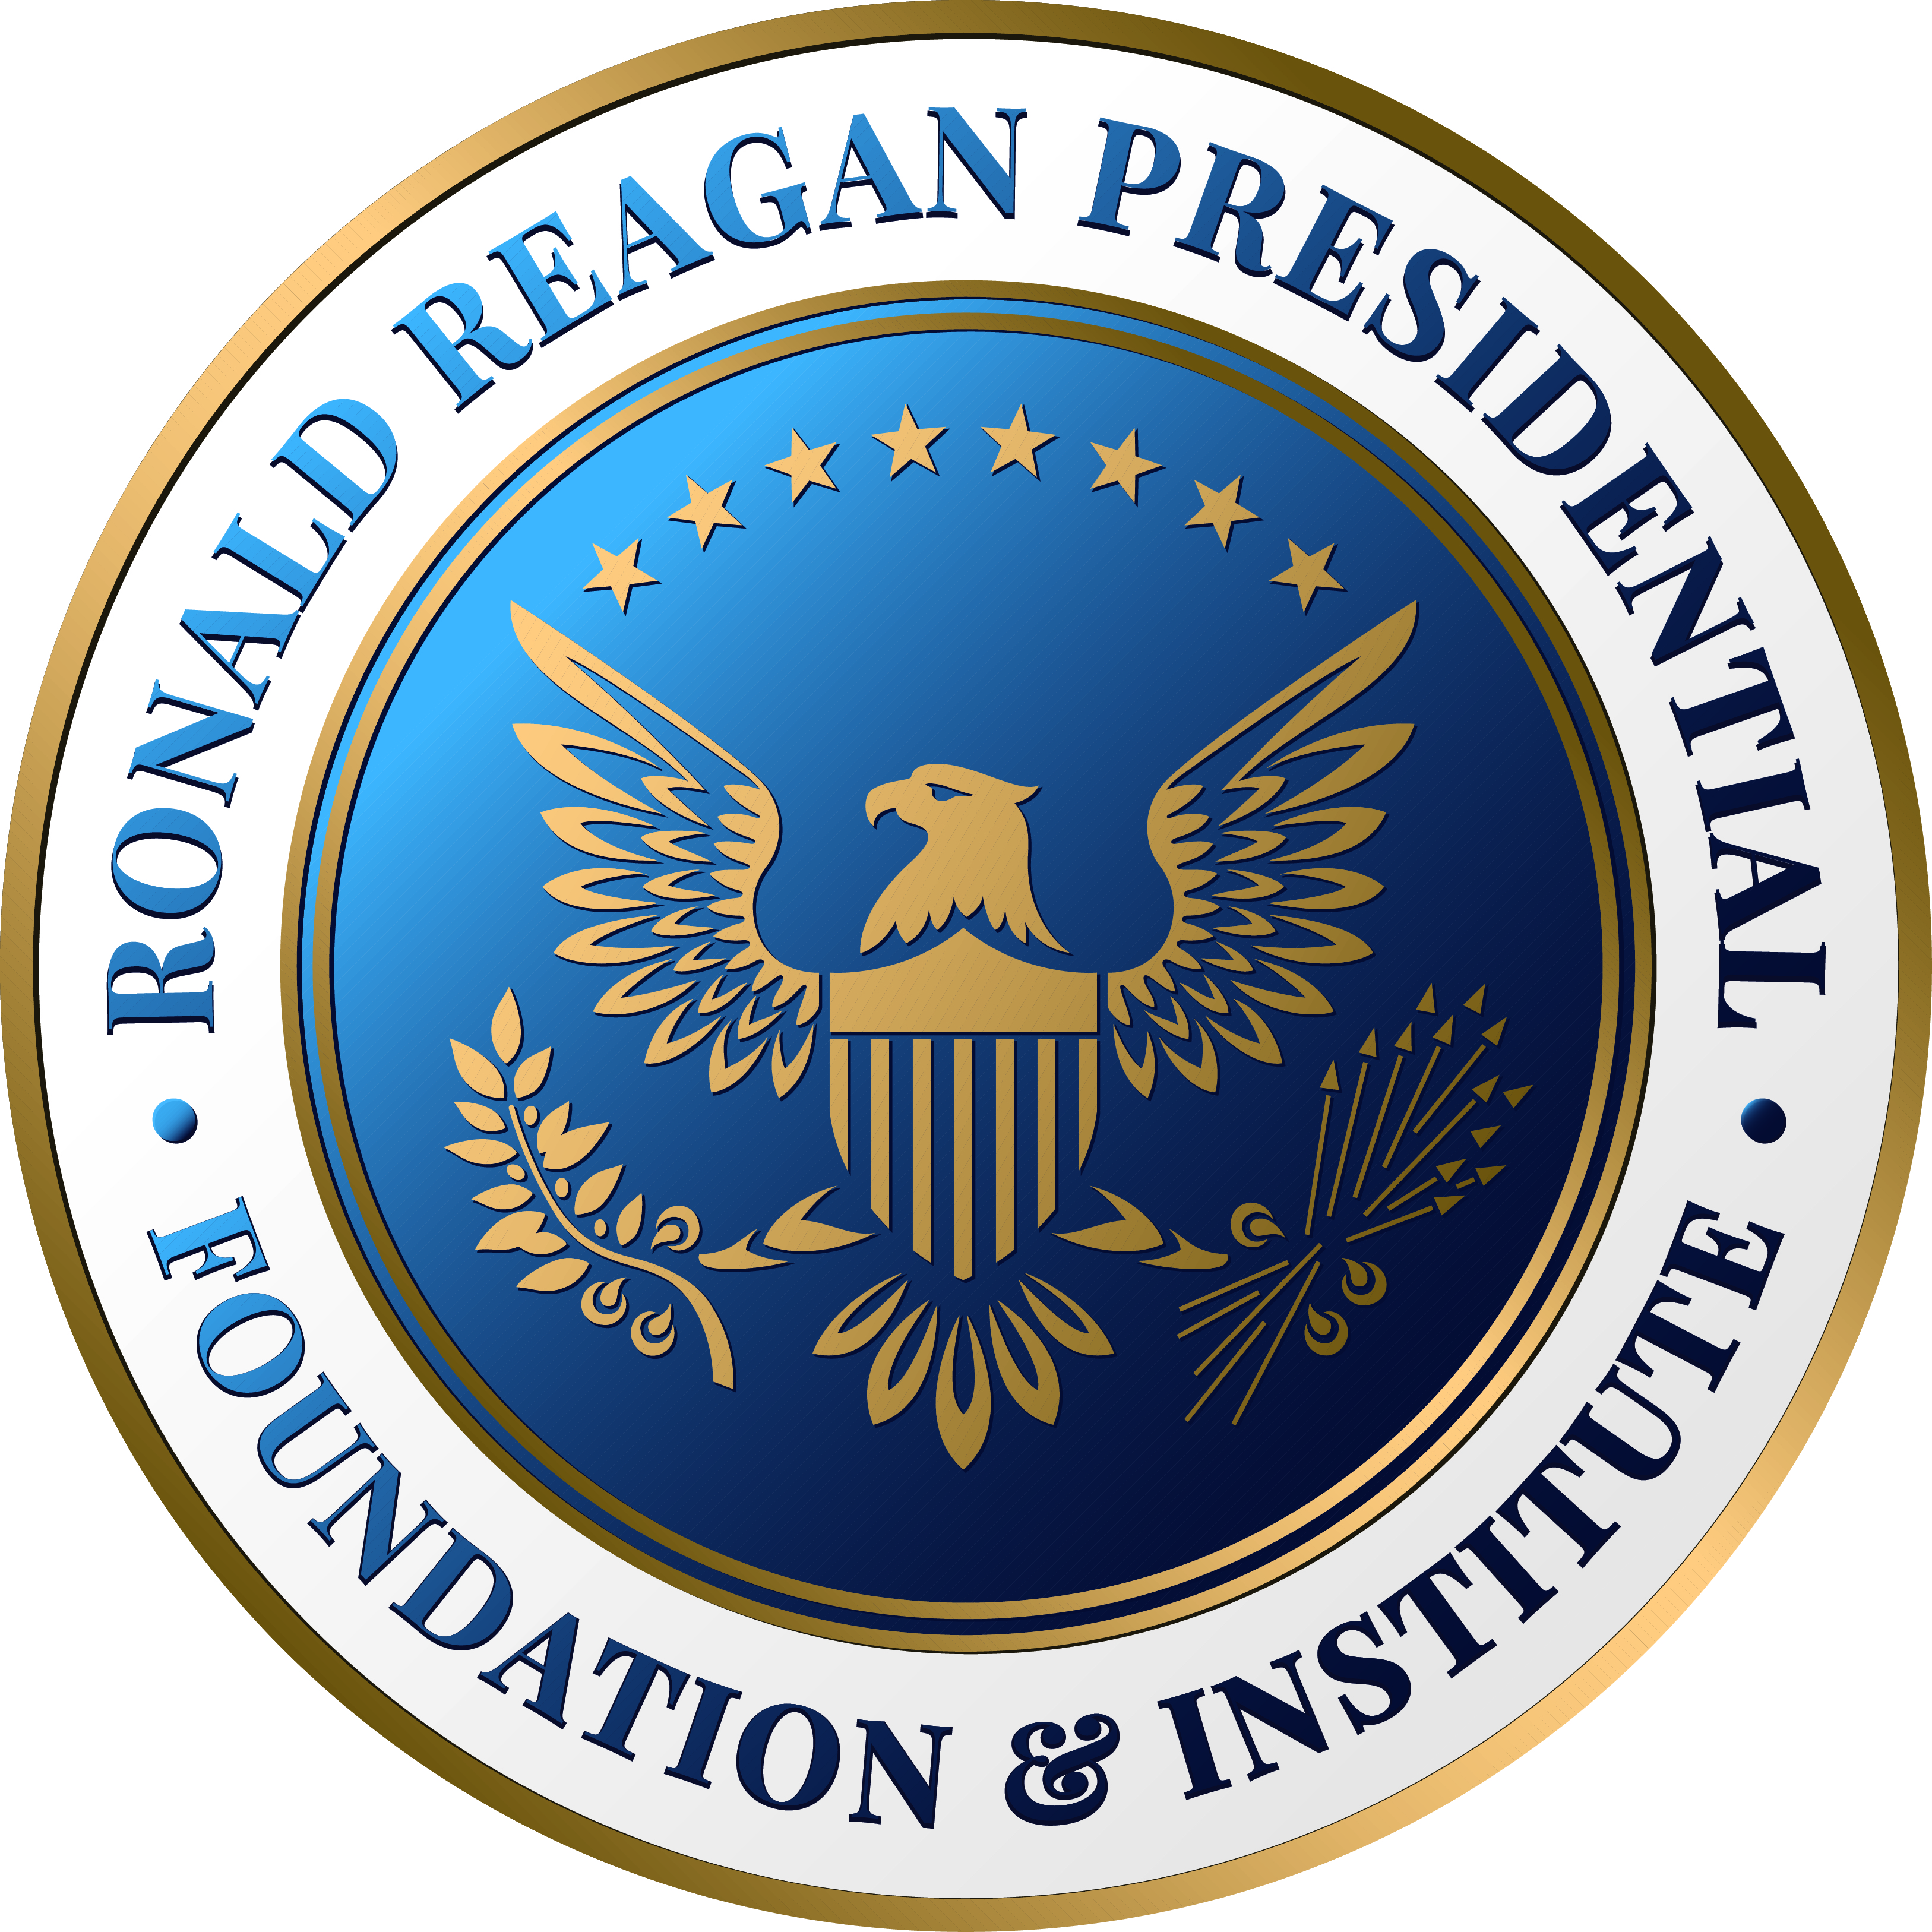 Ronald Reagan Presidential Foundation and Institute